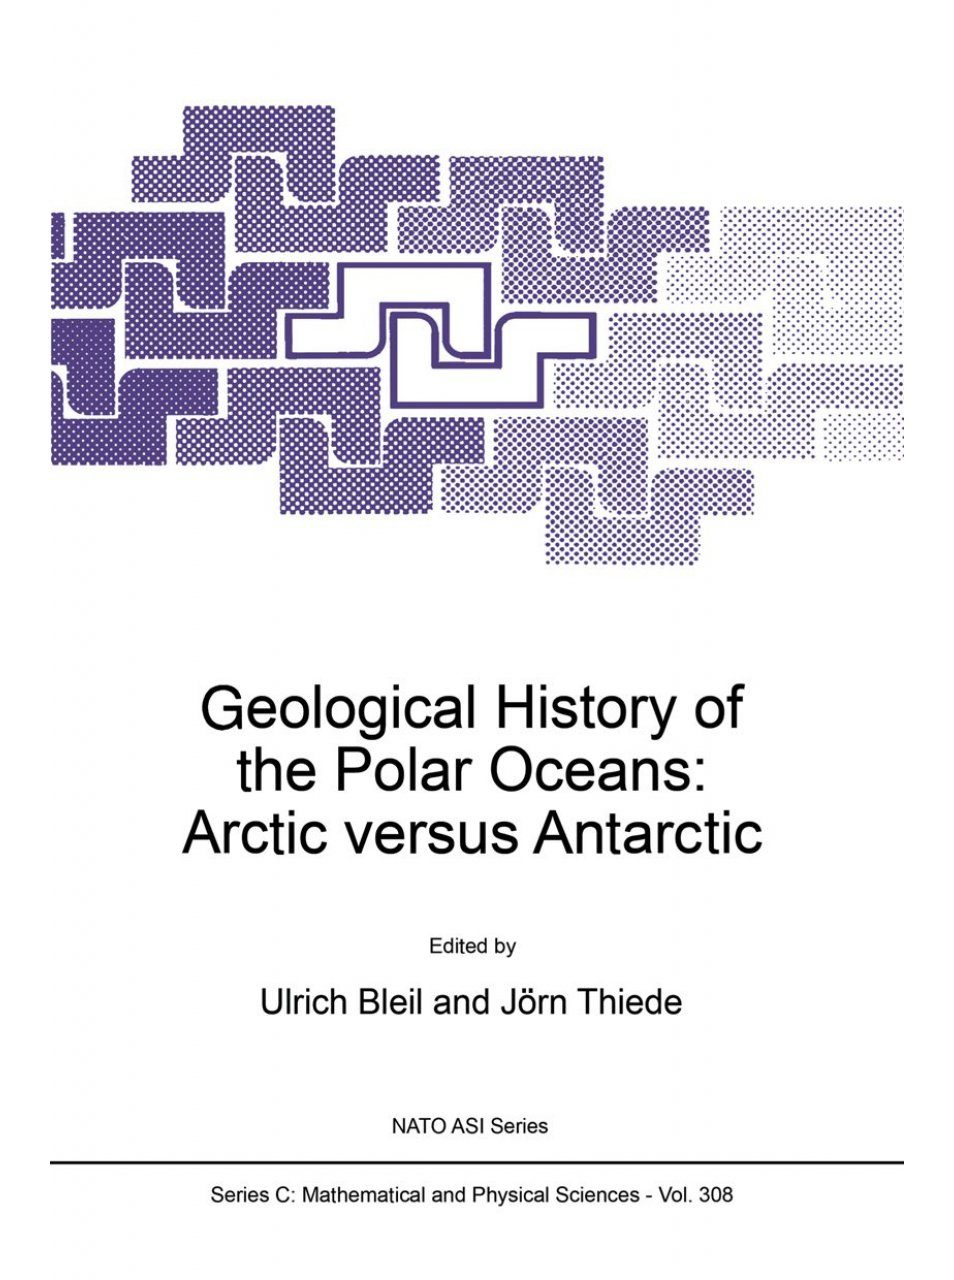 Geological History of the Polar Oceans